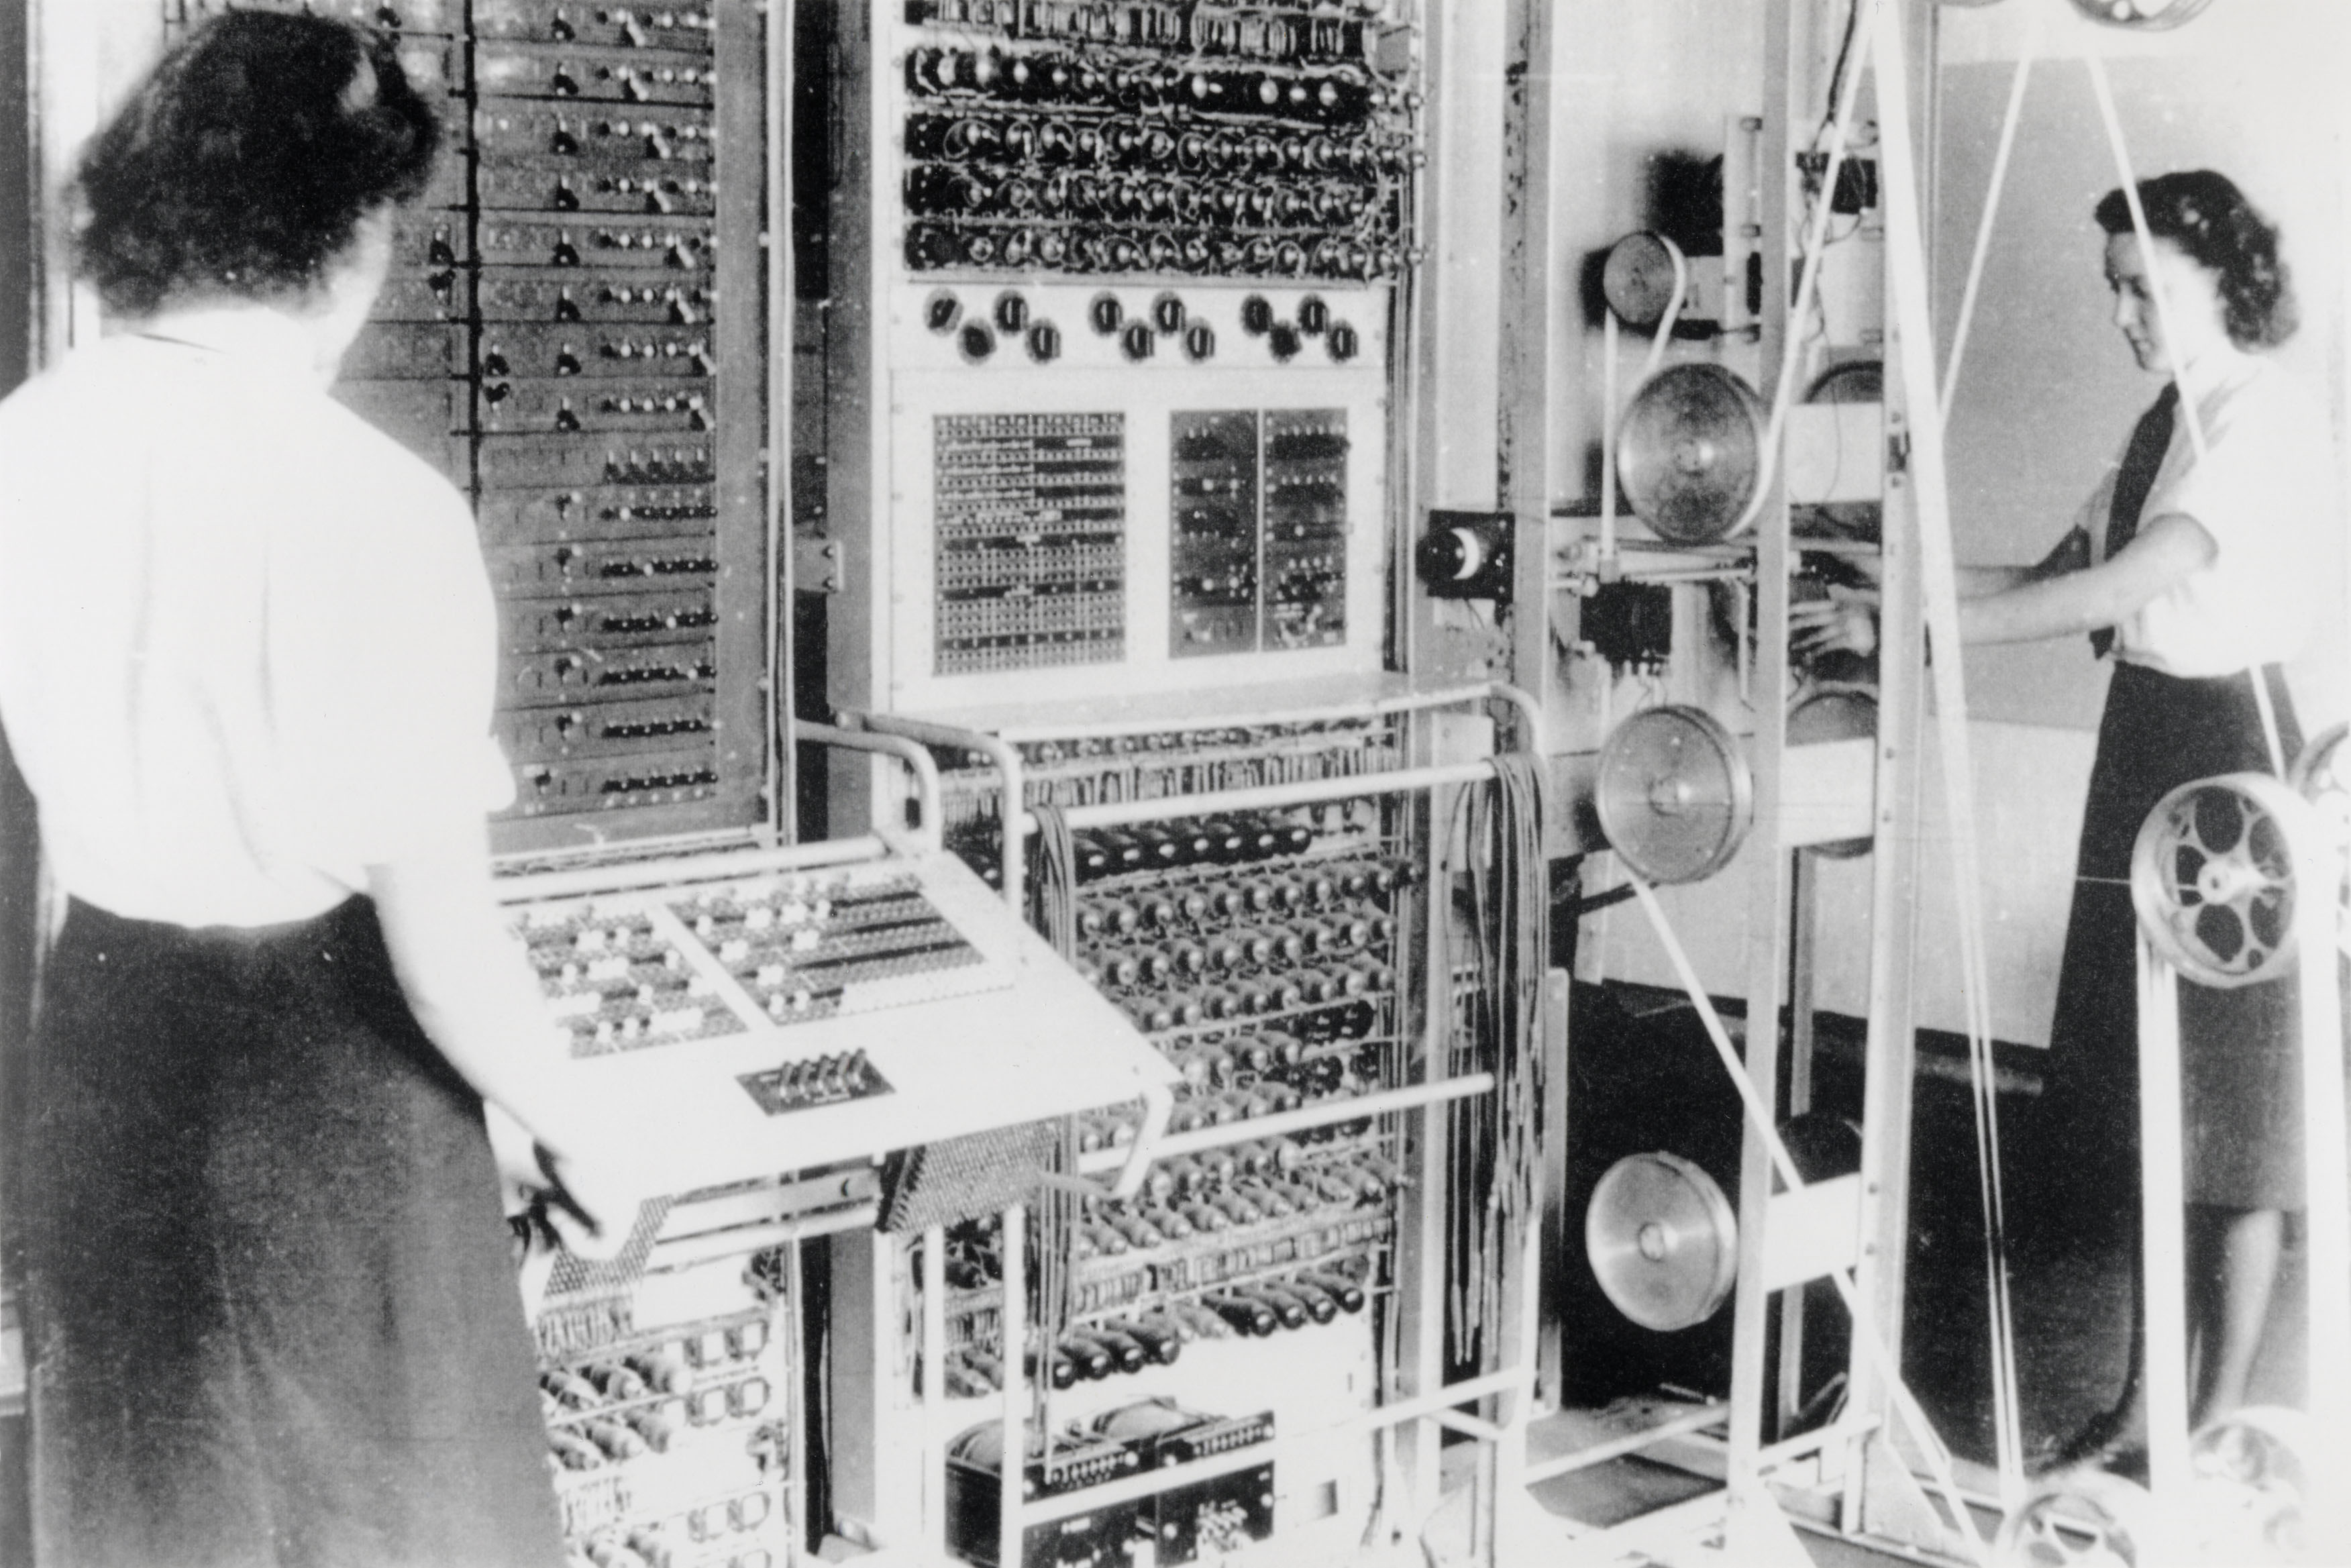 Old photo of 2 women in front of a computer